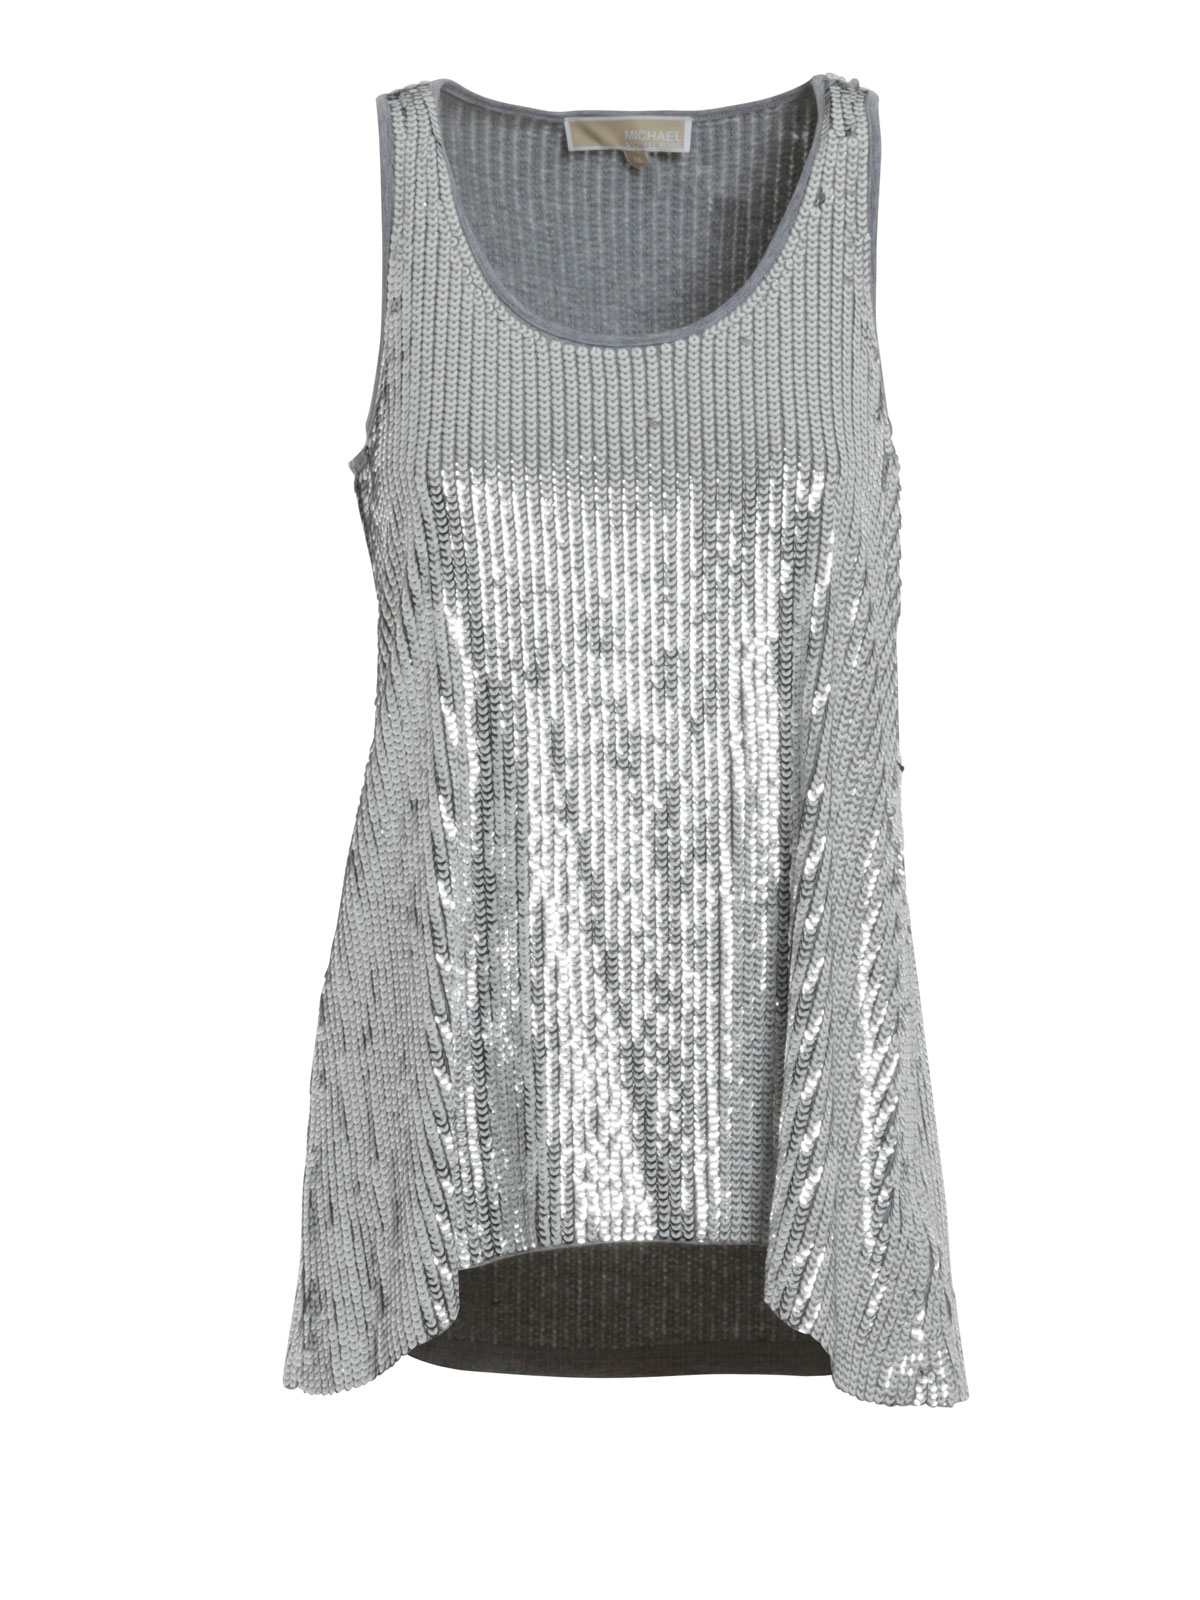 Michael Kors Sequin Tank Top Tops Amp Tank Tops